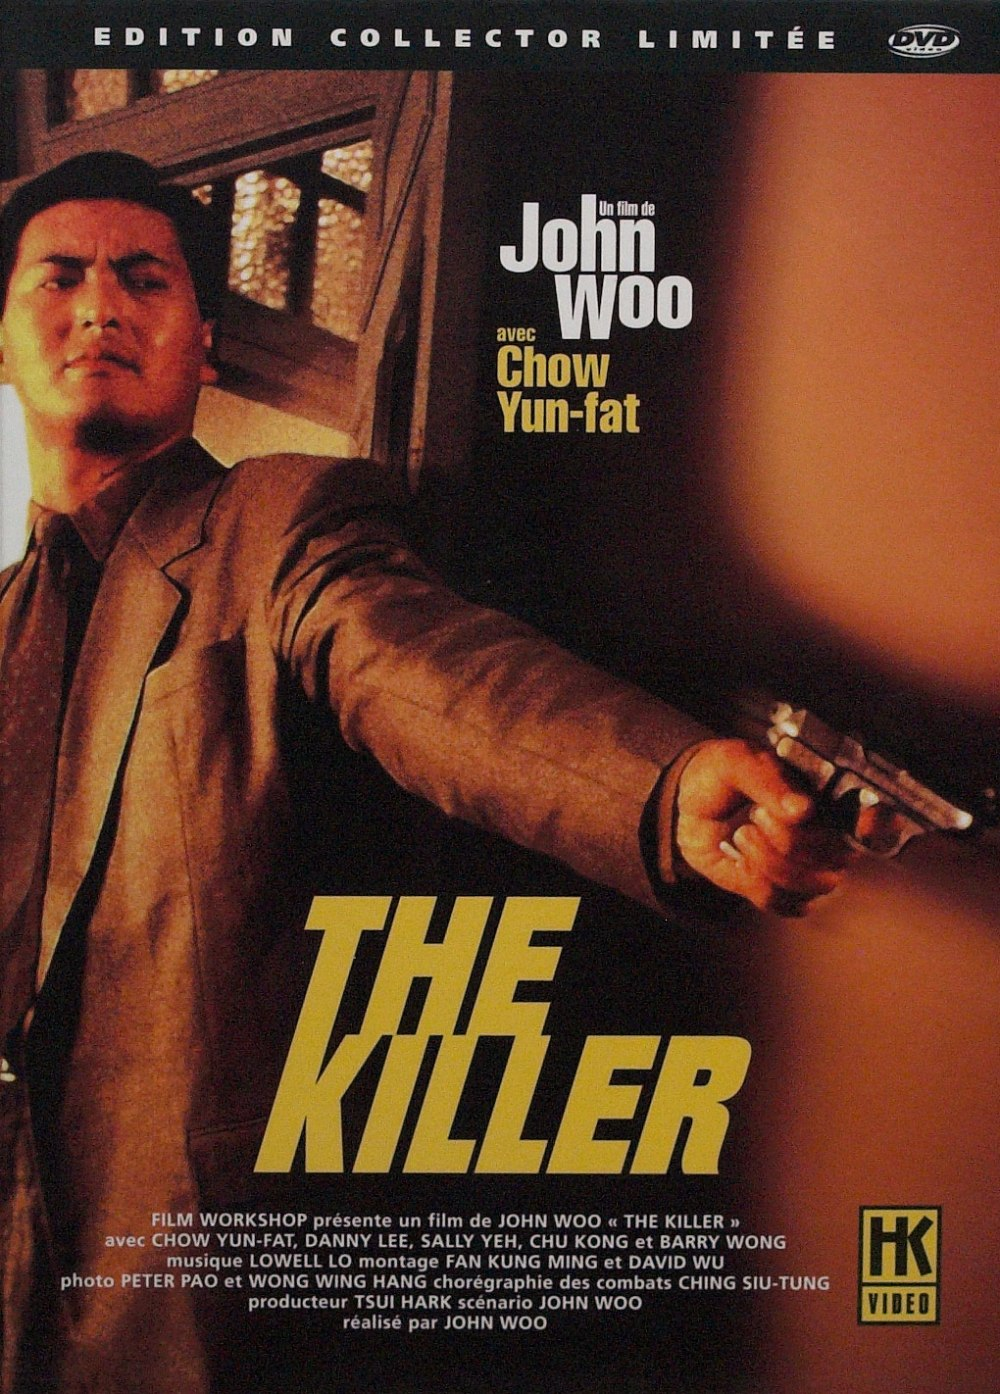 The_Killer_John_Woo